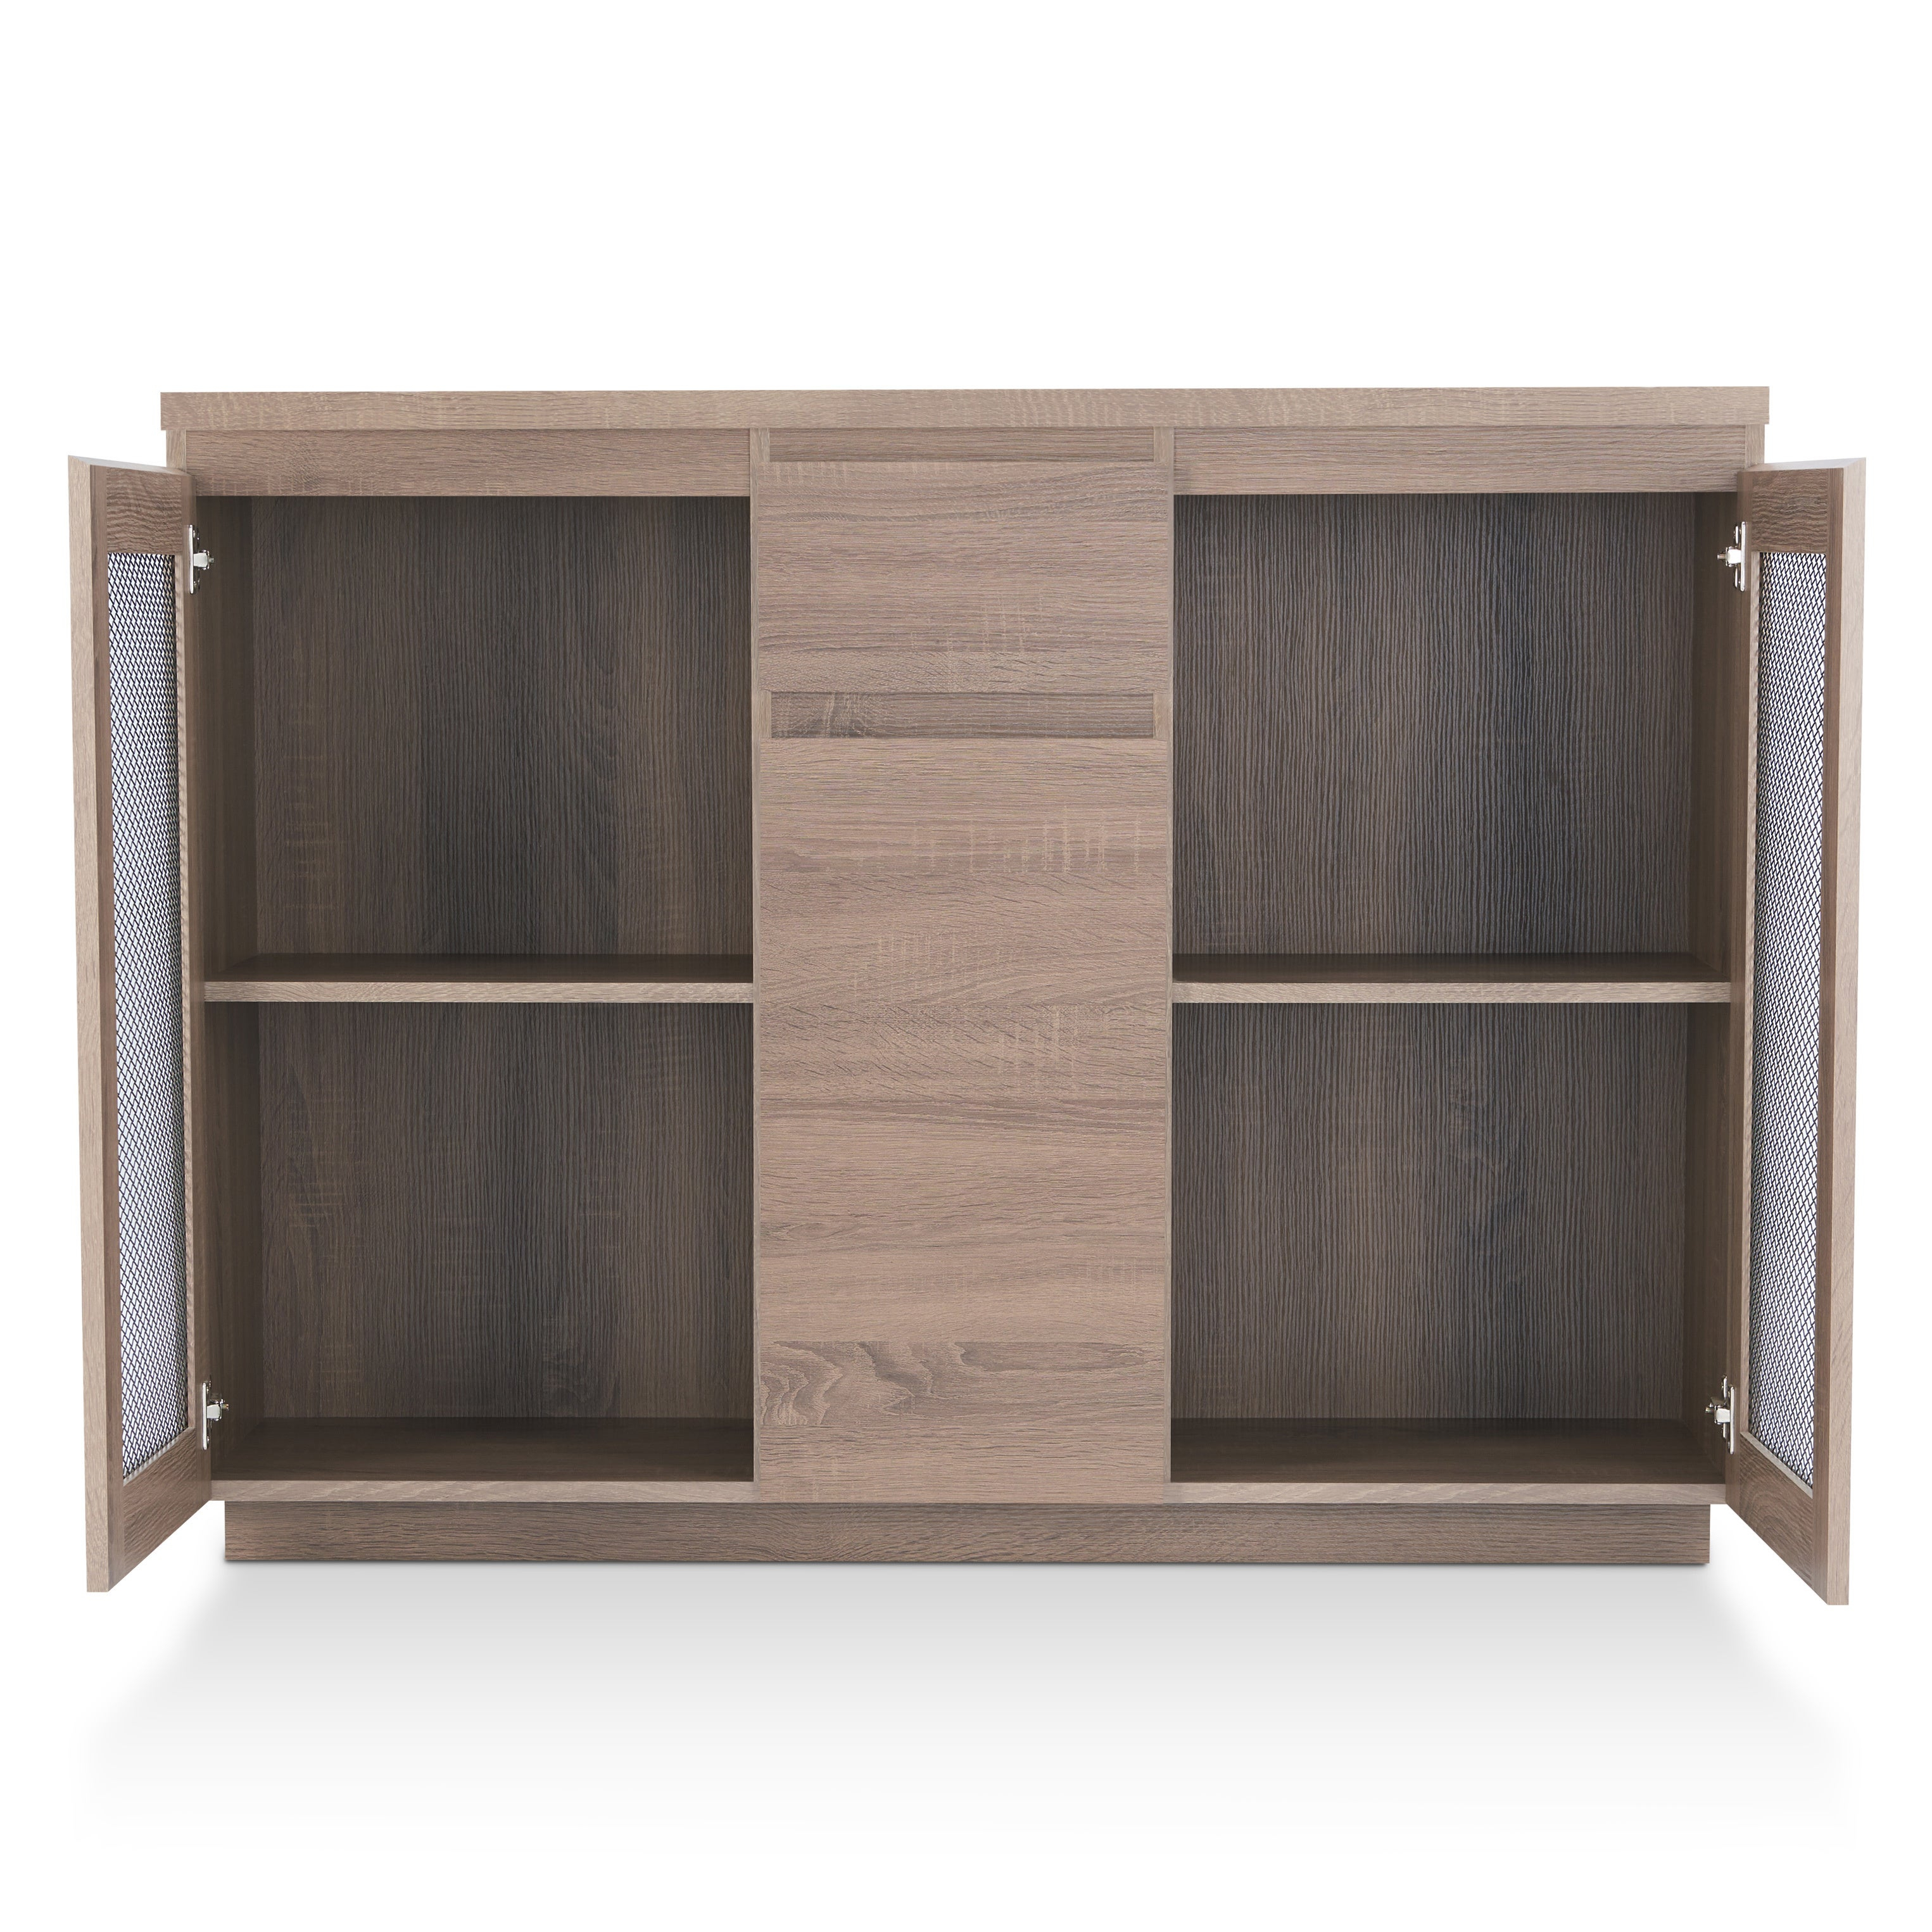 Furniture Of America Darwen Contemporary Multi Storage Dining Buffet Intended For Contemporary Multi Storage Dining Buffets (View 9 of 30)